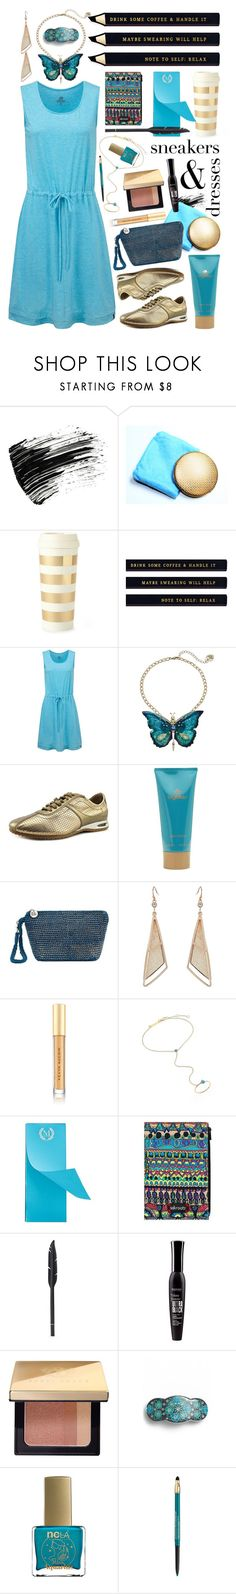 """Sporty Chic"" by joy2thahworld ❤ liked on Polyvore featuring Marc Jacobs, Kate Spade, Betsey Johnson, Cole Haan, byblos, The Sak, GUESS, Kevyn Aucoin, ZoÃ« Chicco and Mark & Graham"